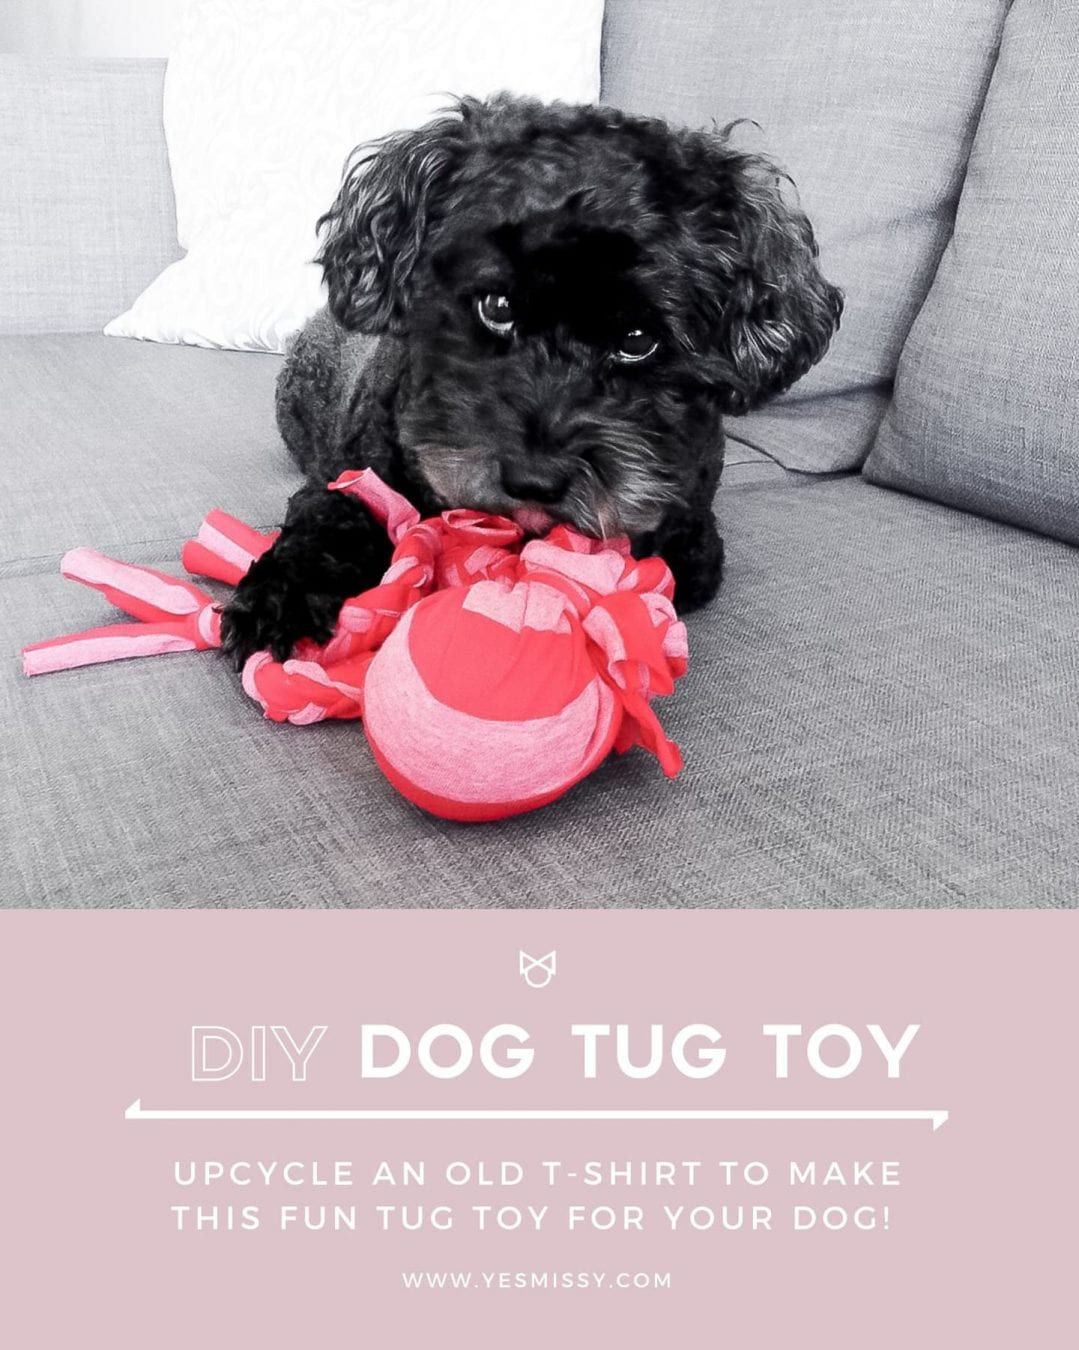 DIY Dog Toy Tutorial - make this easy tug toy for your dog by upcycling an old t-shirt and tennis ball